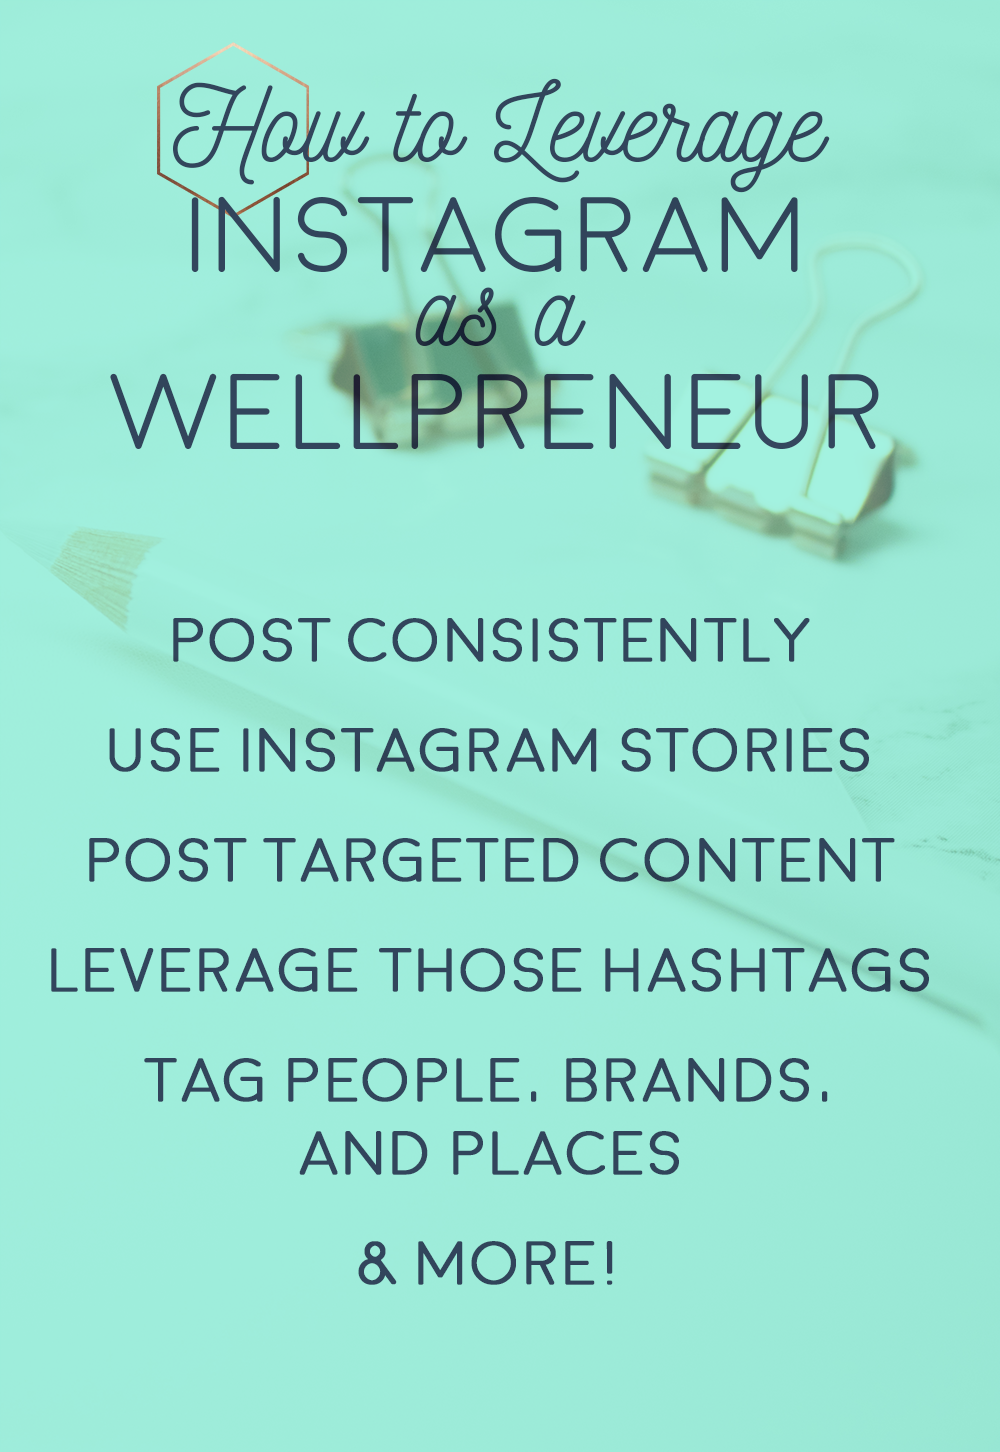 how to leverage instagram as a wellpreneur pinterest